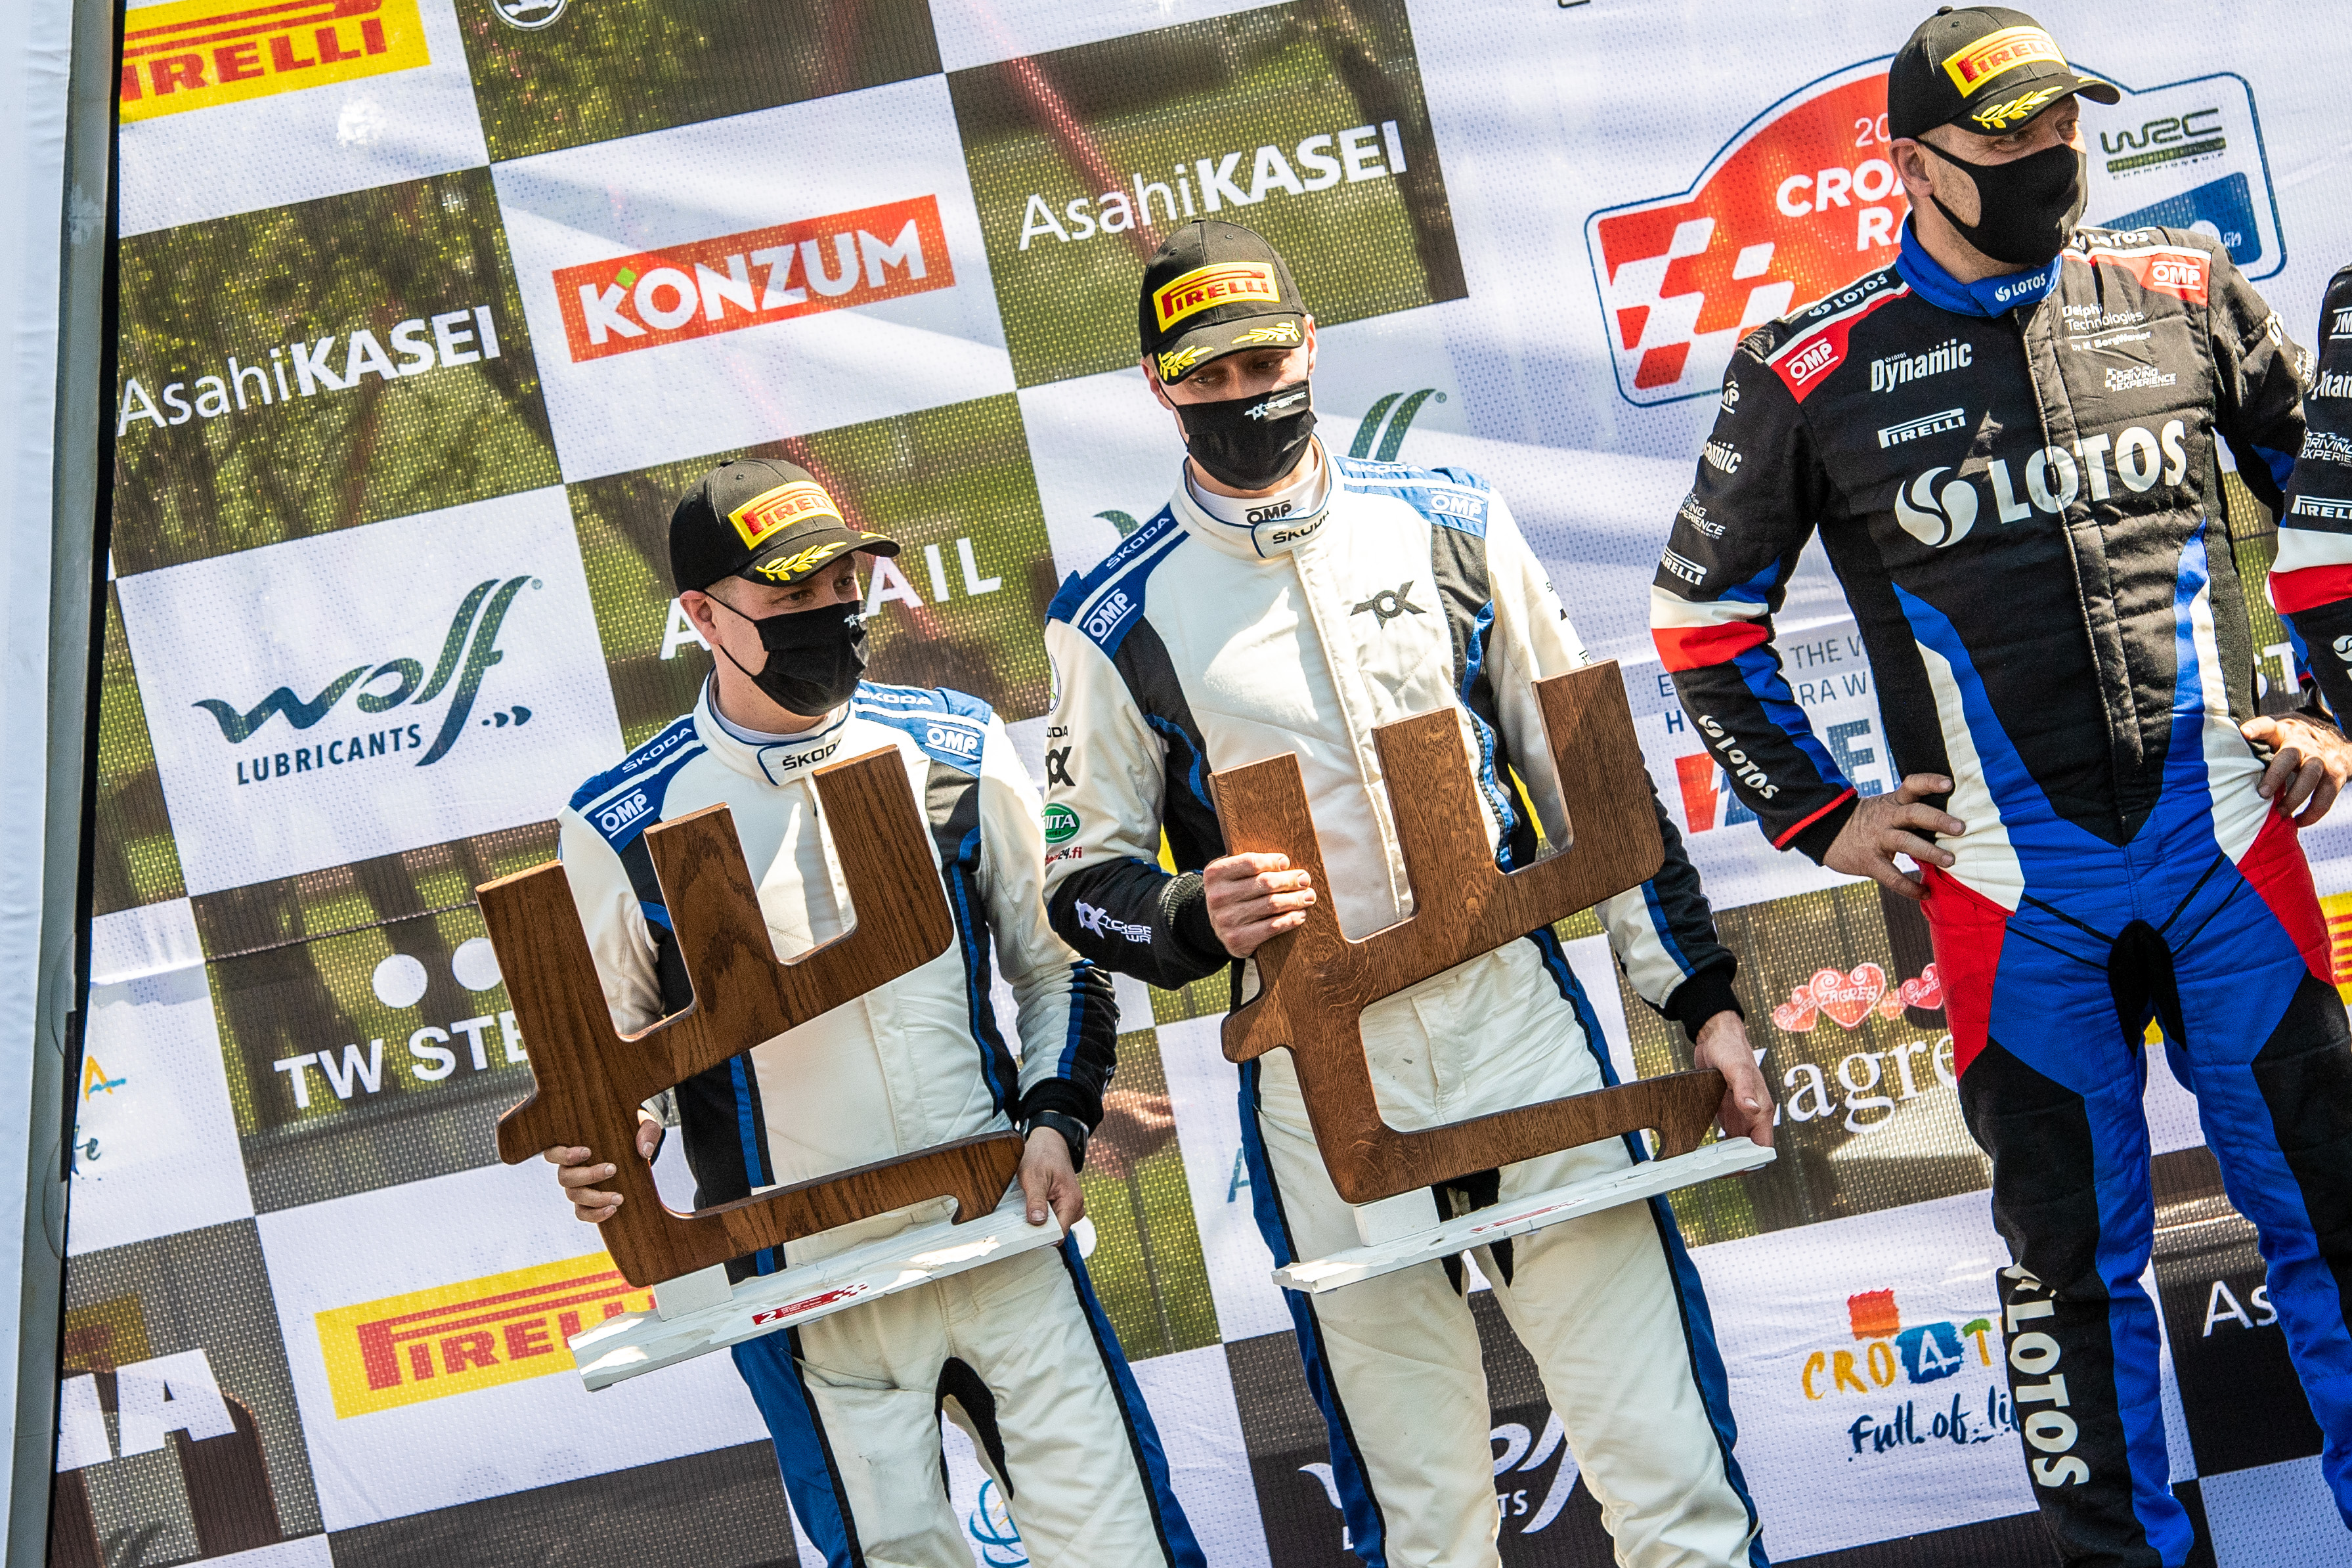 Rally Croatia: SKODA crews score 1-2 in WRC3, Andreas Mikkelsen defends WRC2 overall lead - Image 4